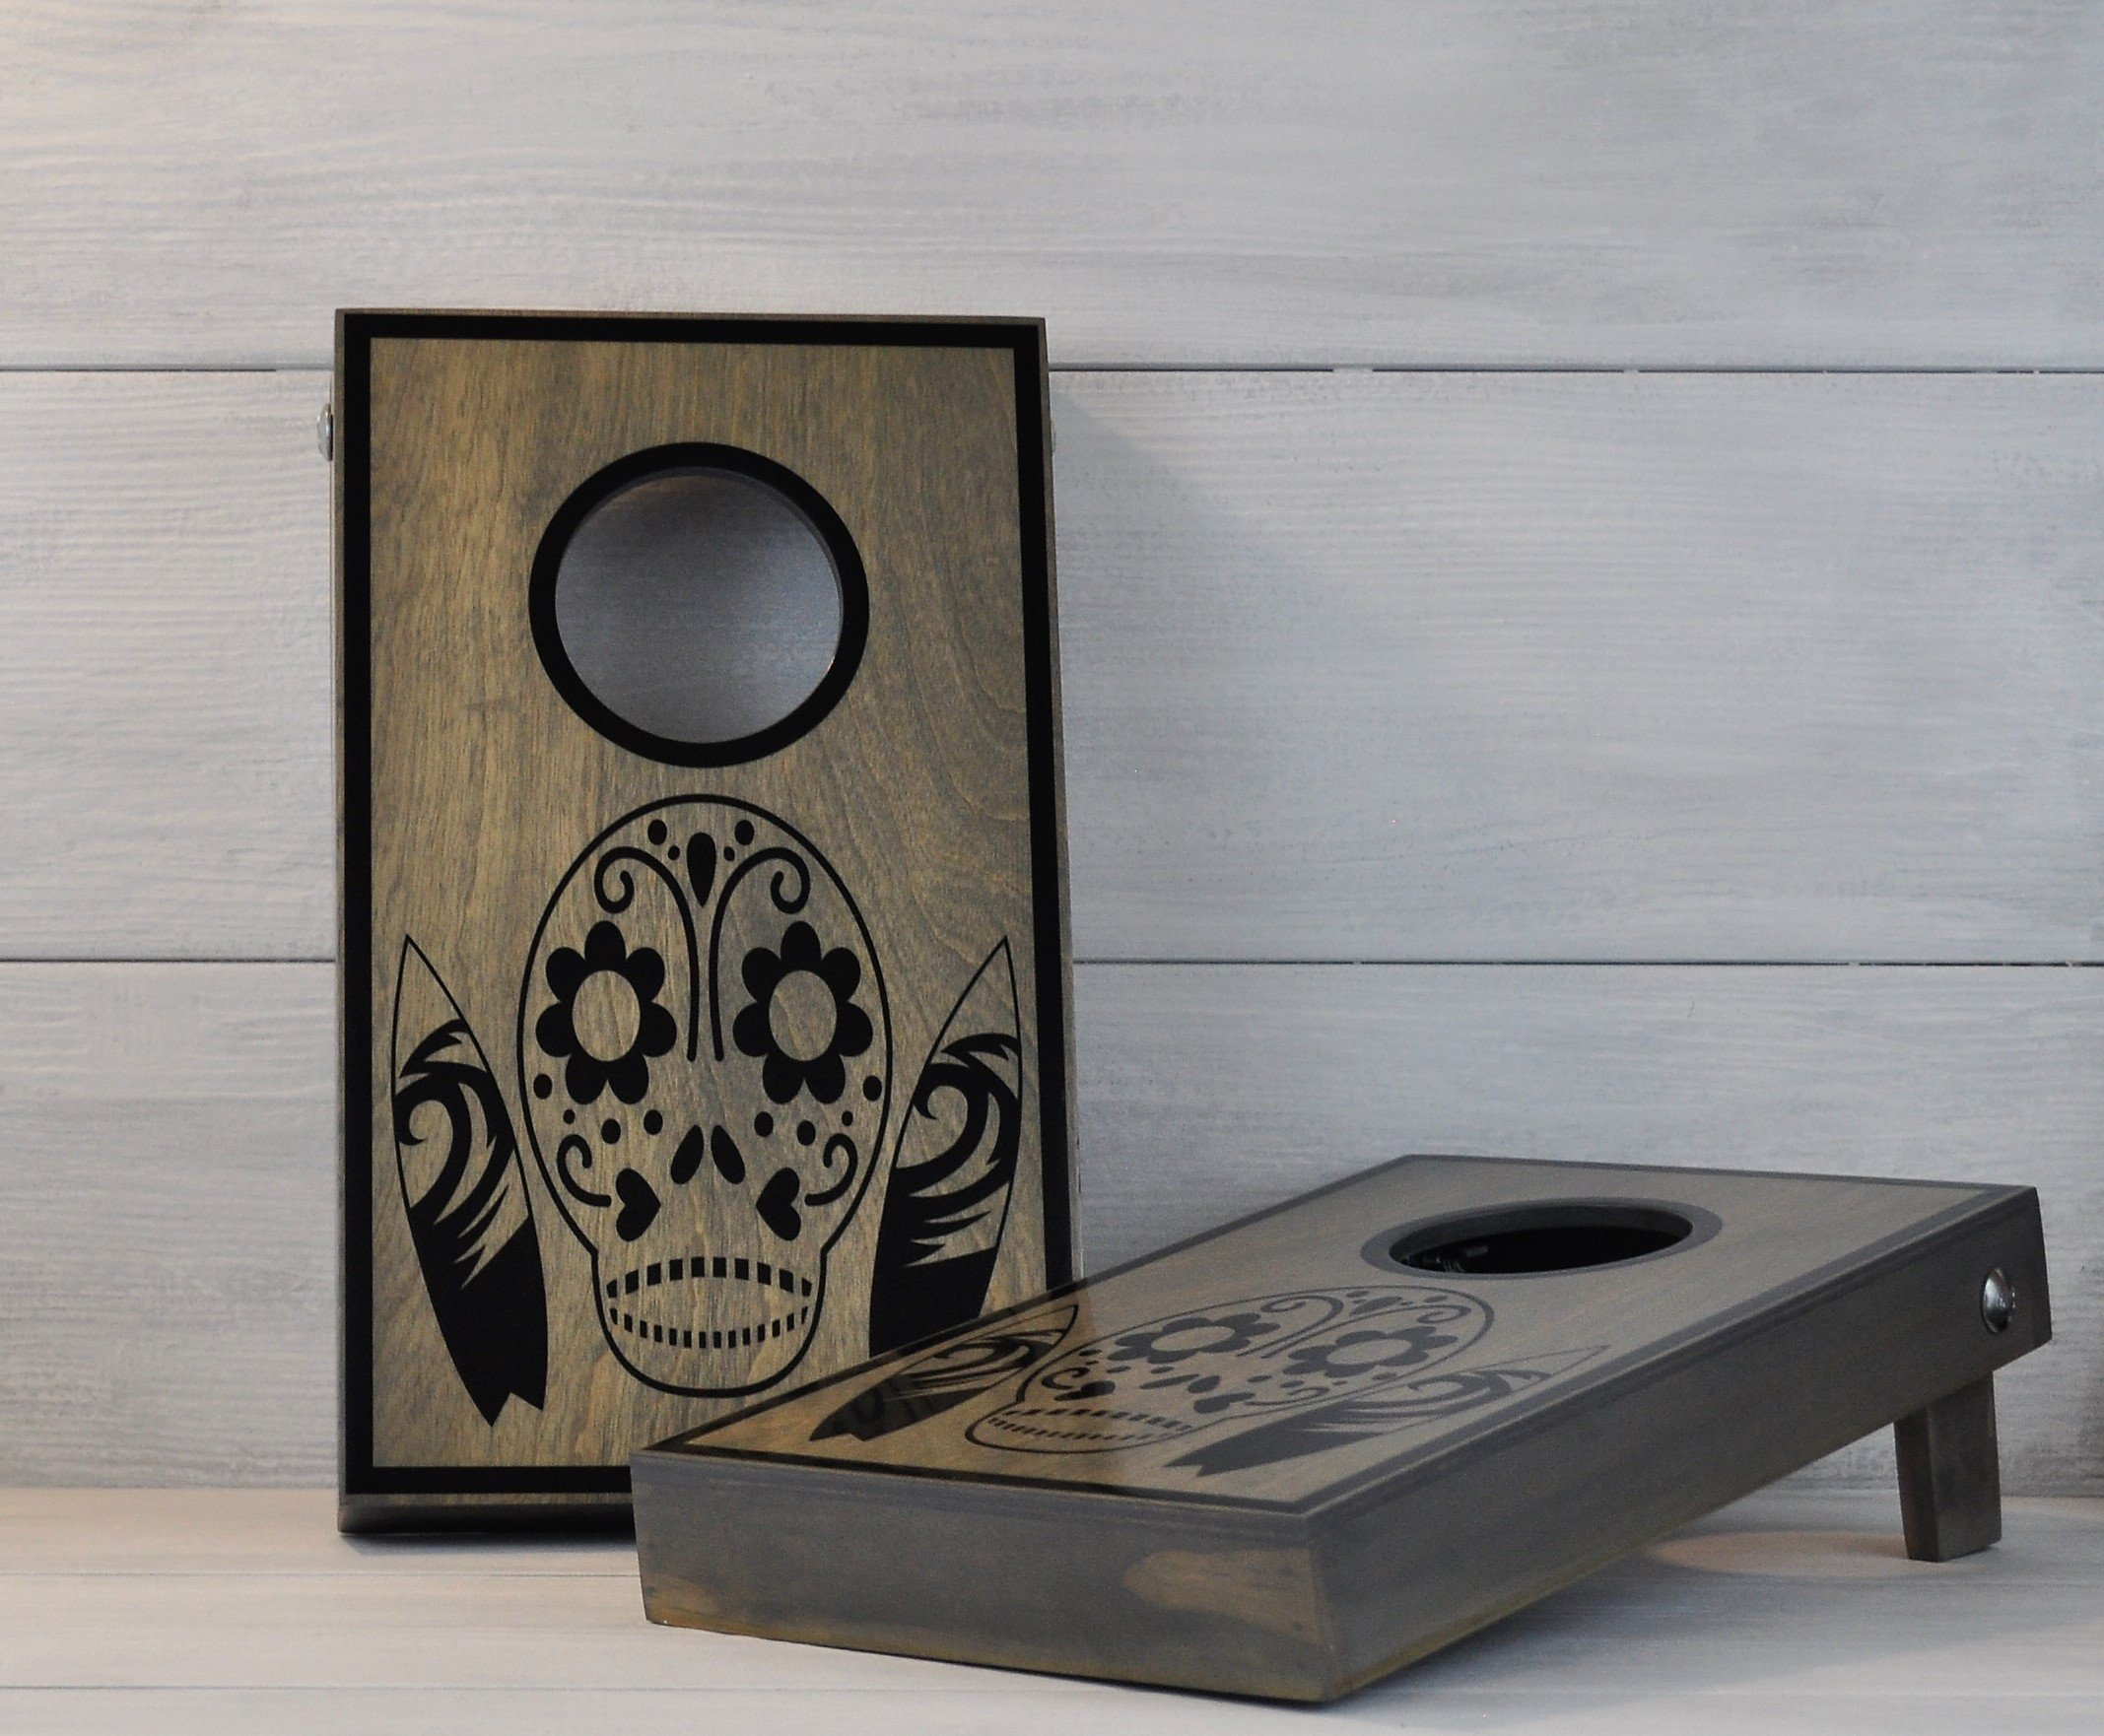 Bar Games, Mini Cornhole, Sugar Skull, Day of the Dead, Office Games, Racing Gift, Nascar Gift, Tailgating, Corporate Gift, RV Gift, Camping